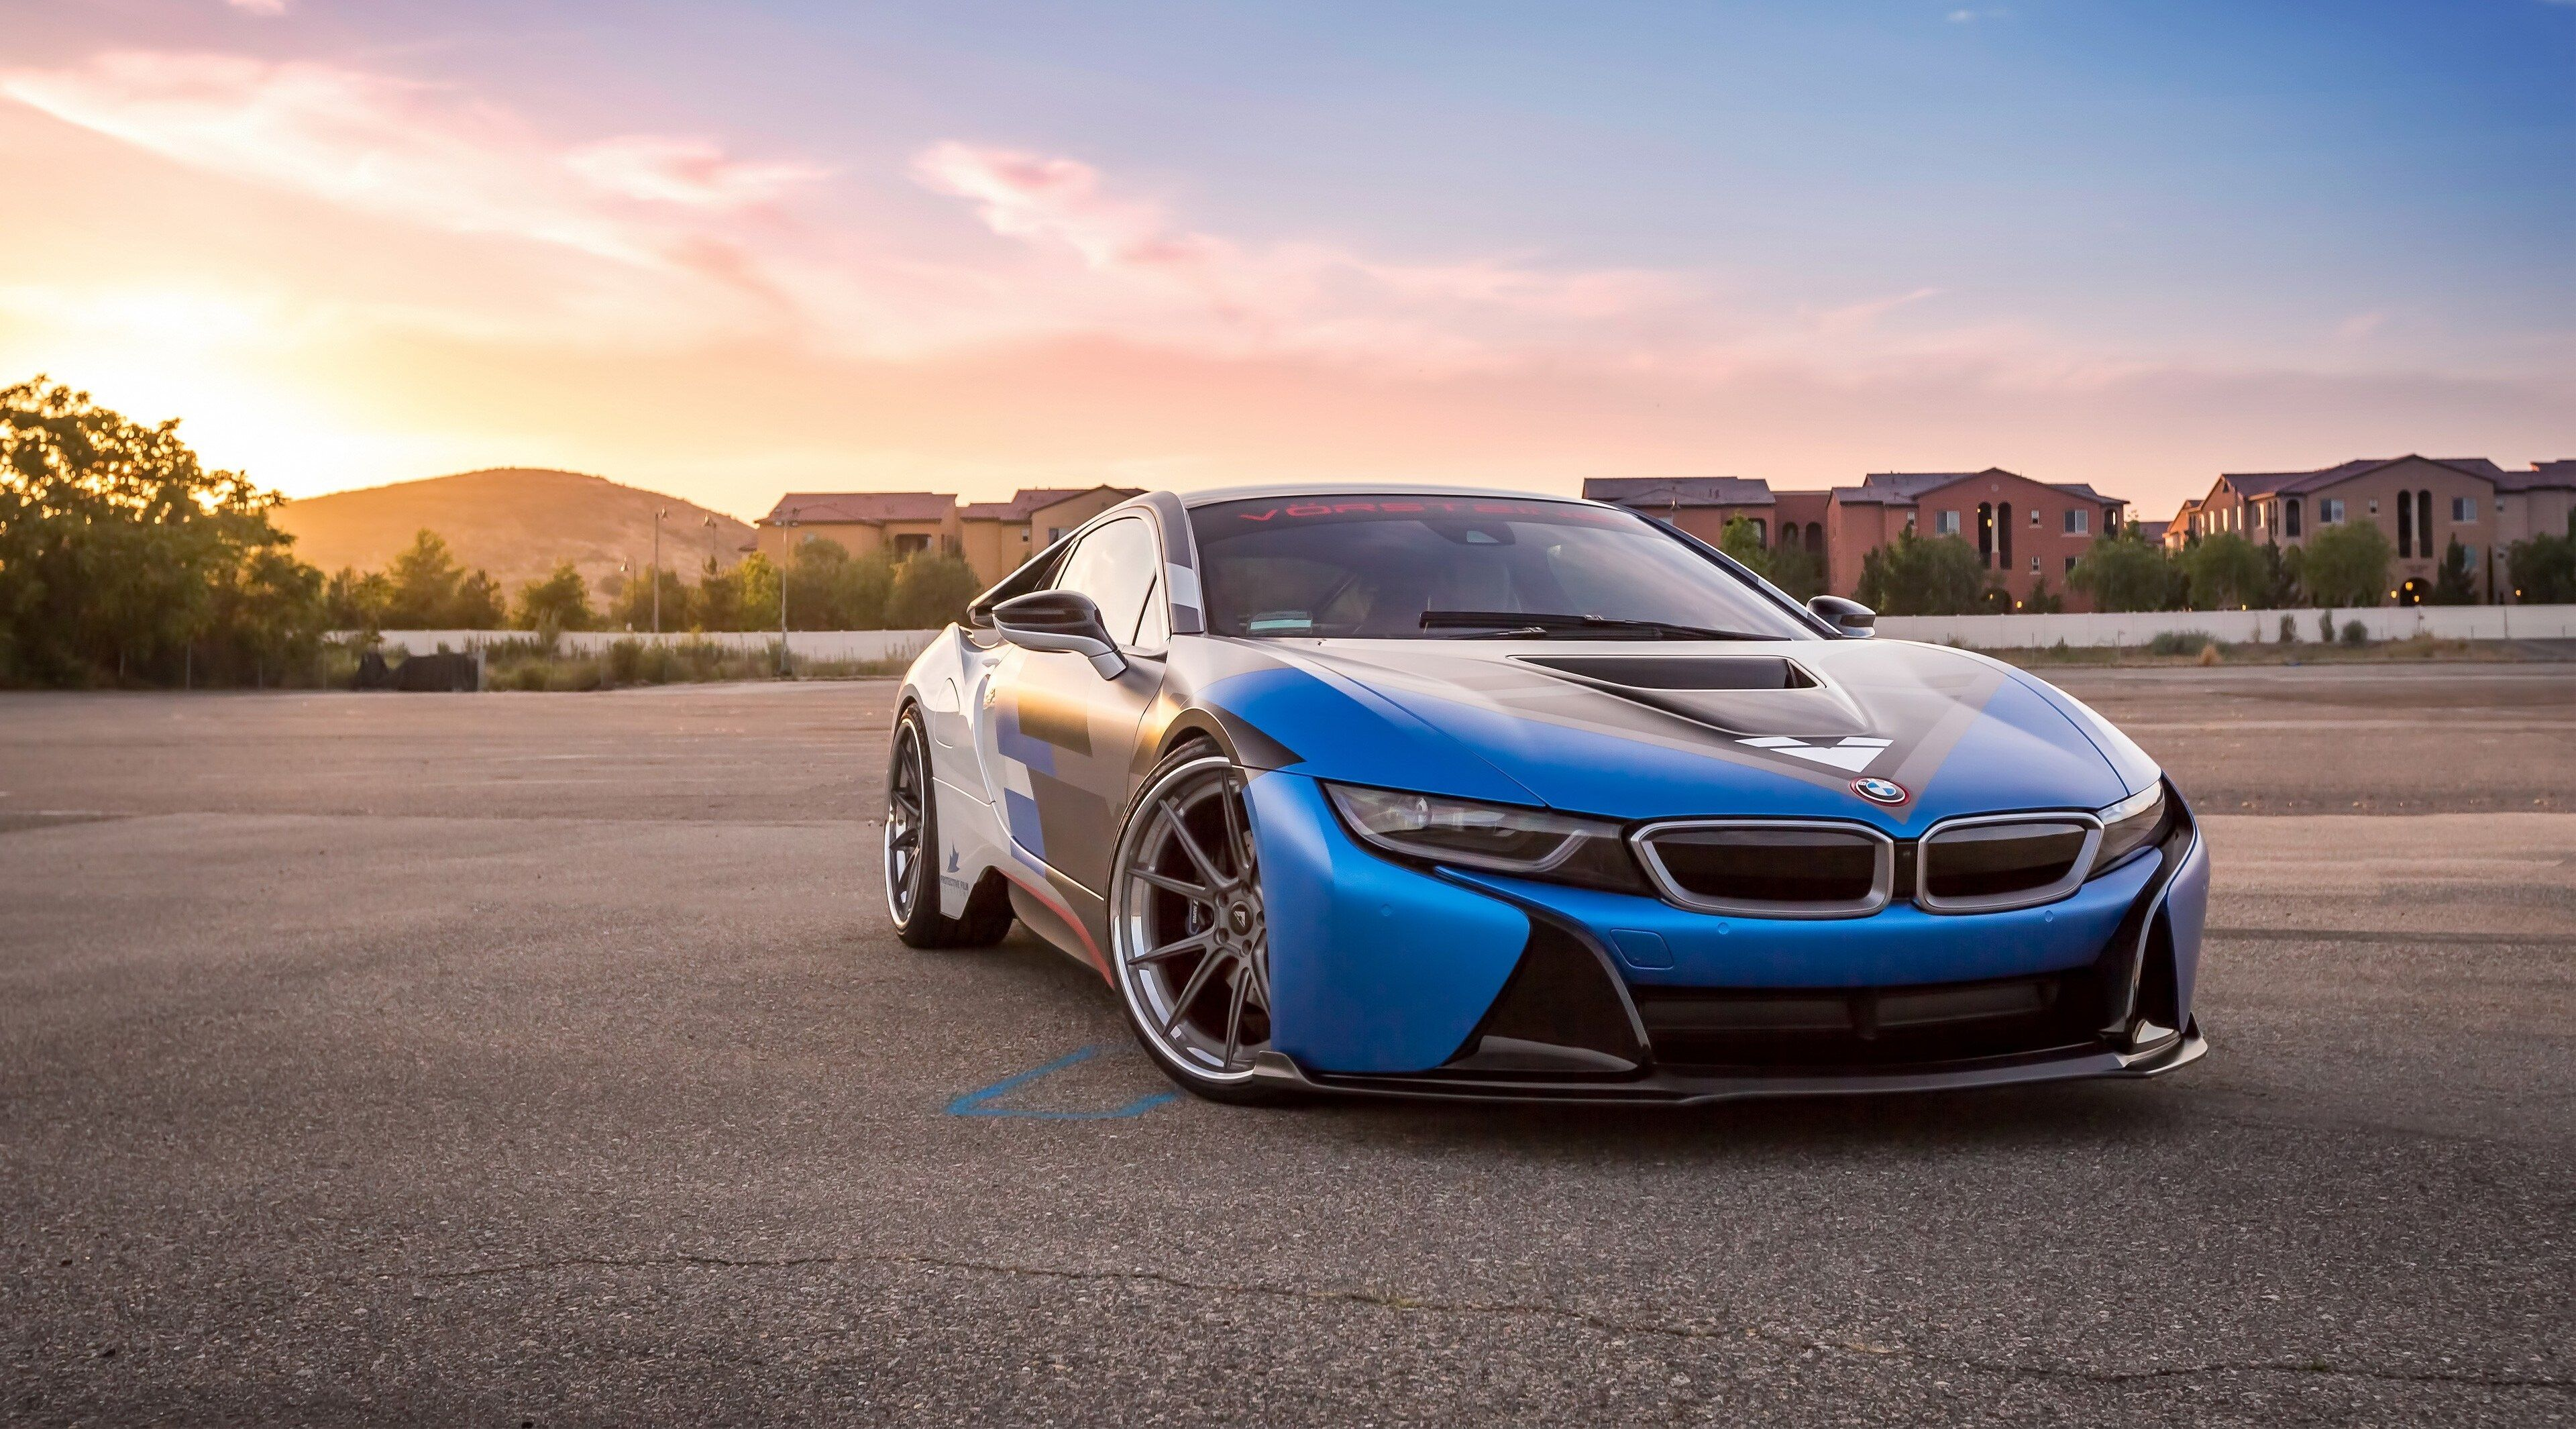 3840x2130 Vorsteiner Vr E Bmw I8 4k Download Pictures For Pc Bmw